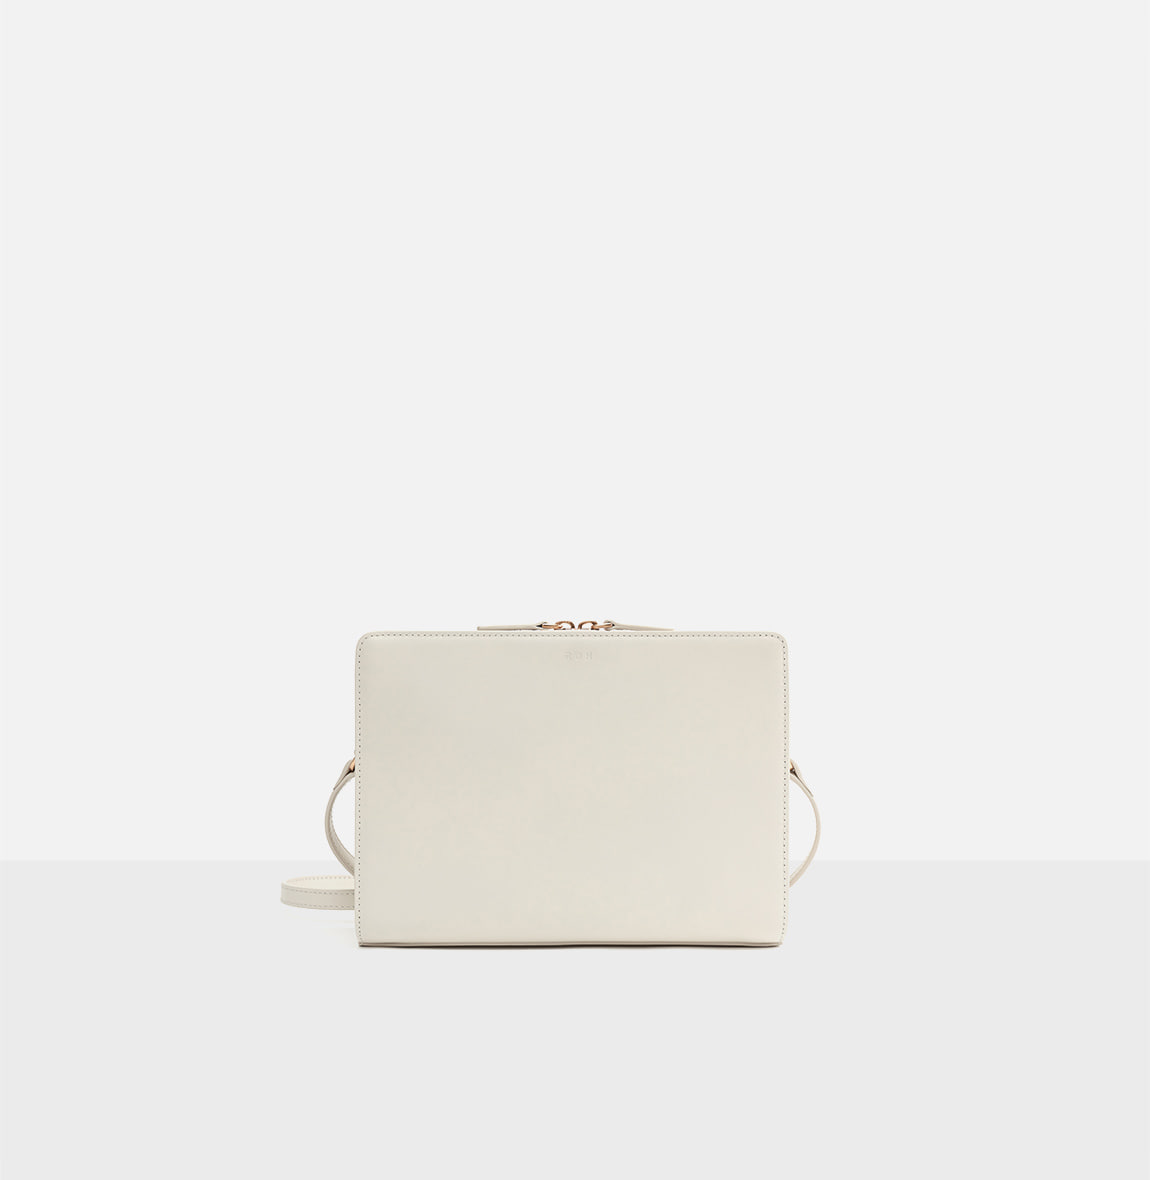 ROH Square bag Ivory